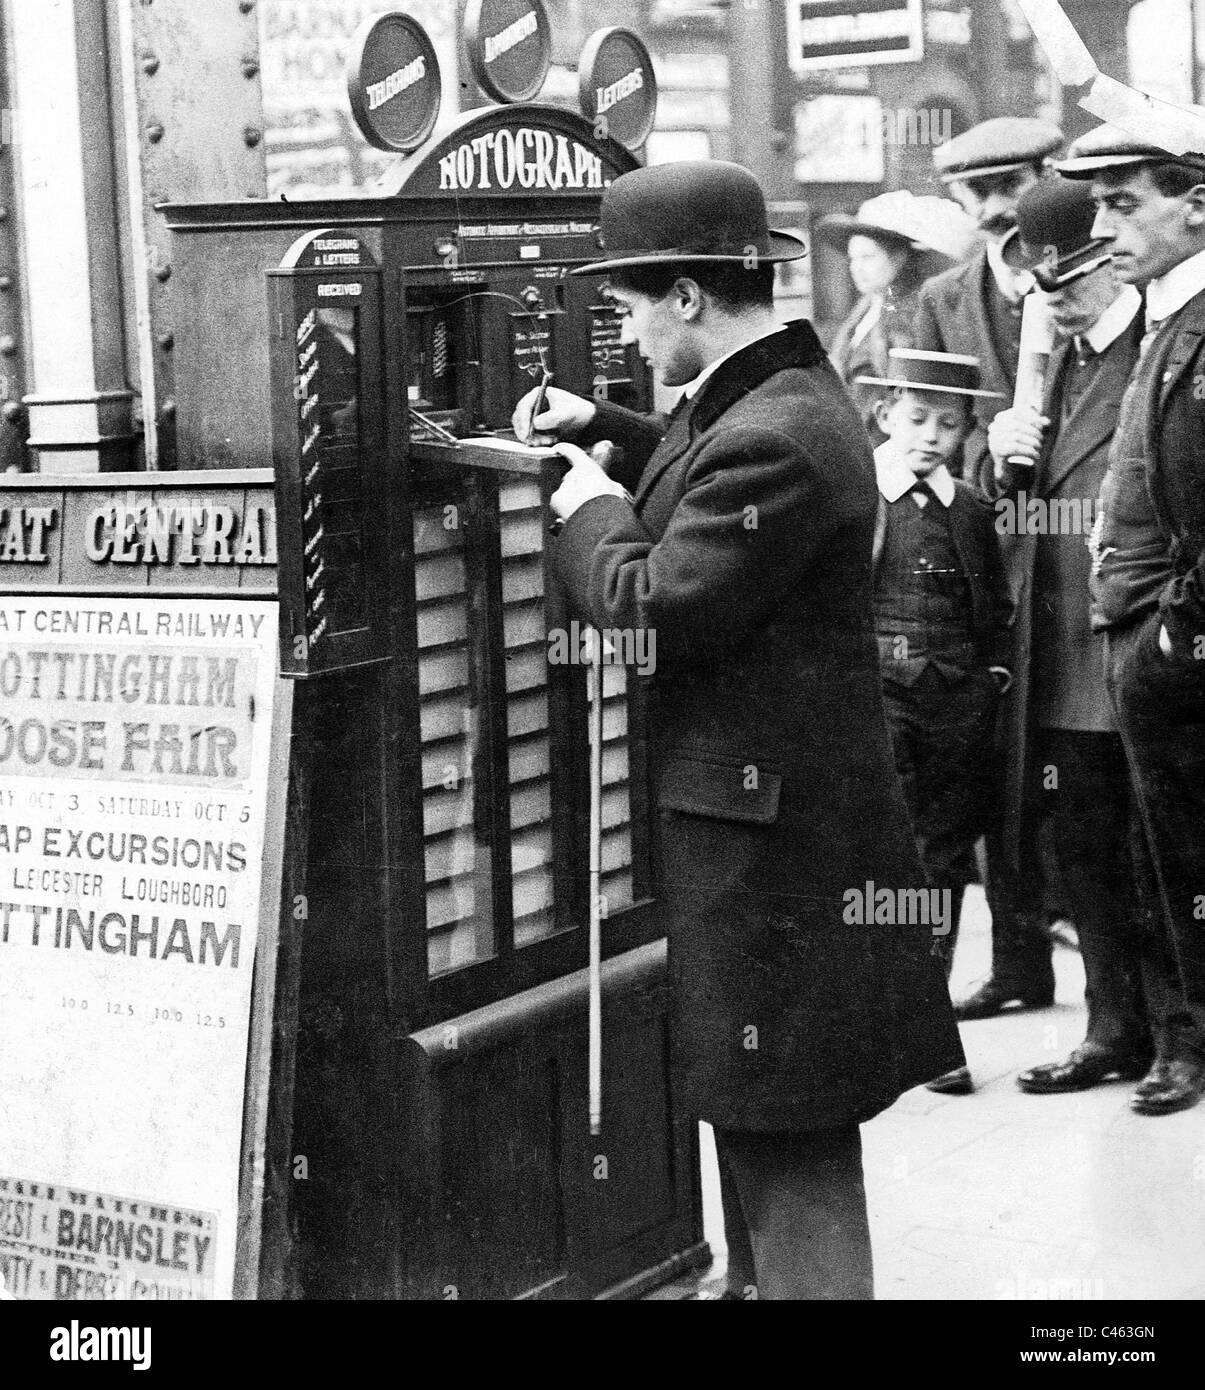 'Notograph', rendezvous machine in London, 1912 - Stock Image